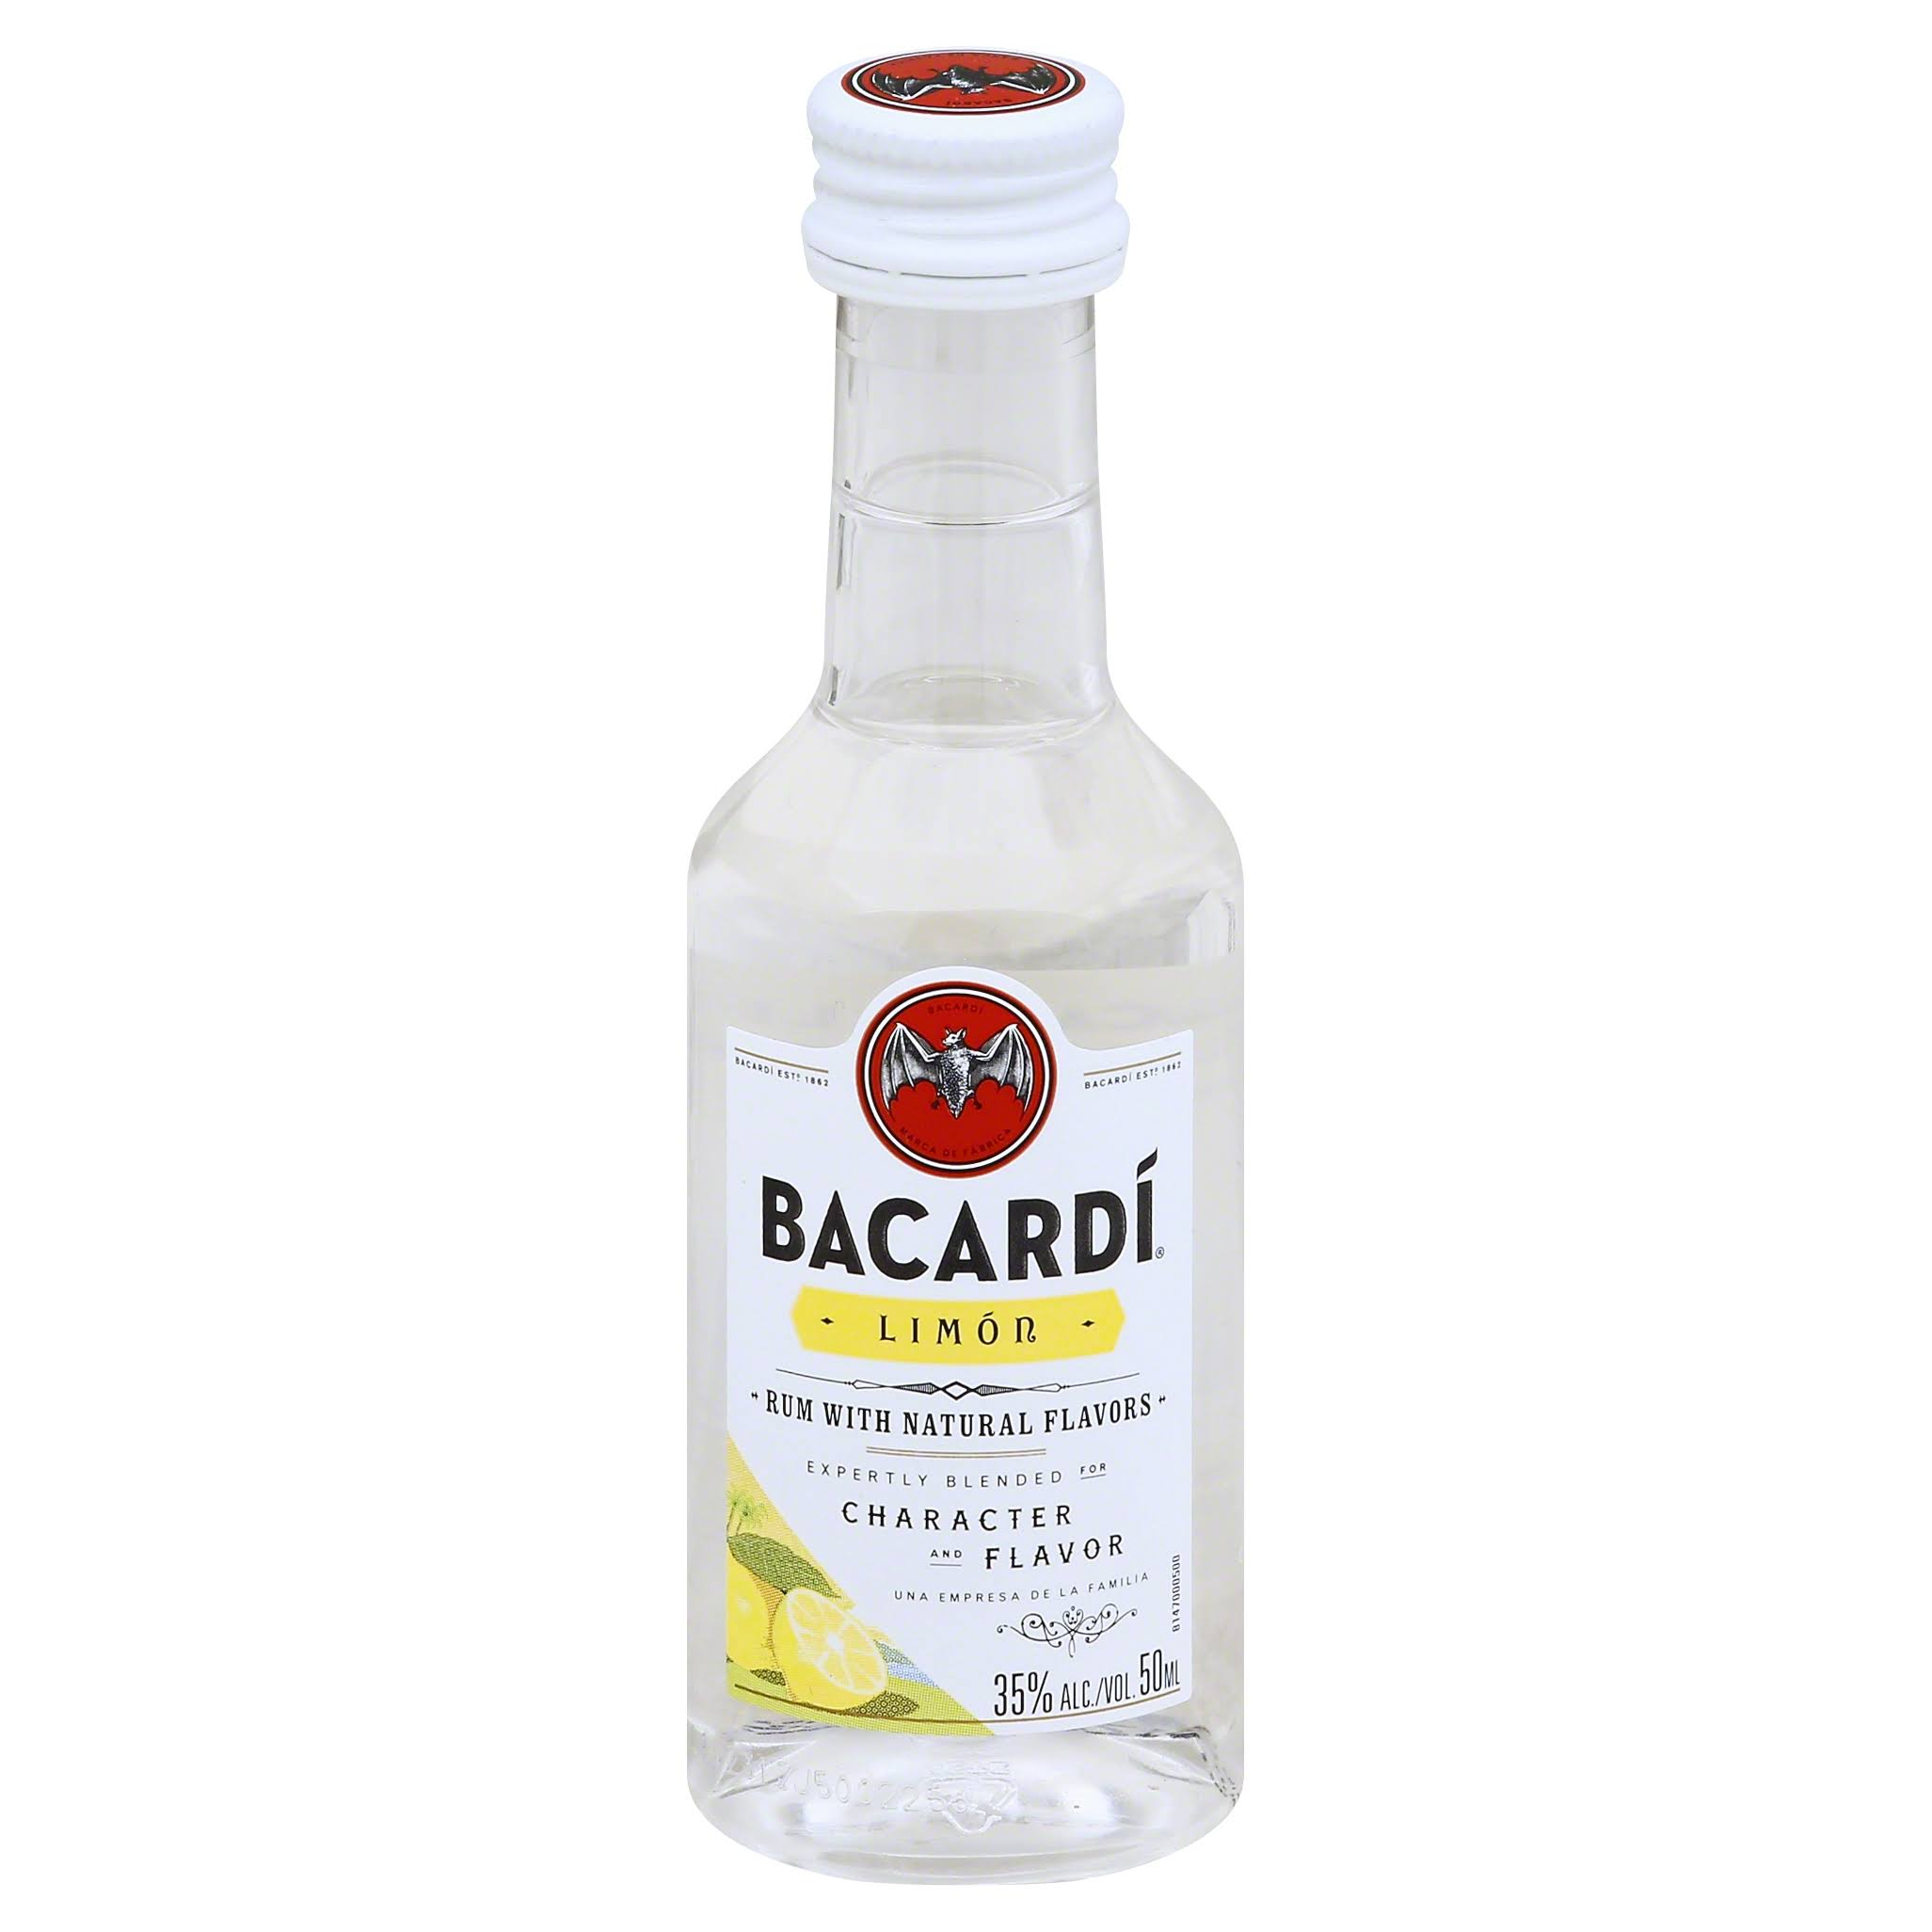 Bacardi Limon Rum - 50 ml bottle